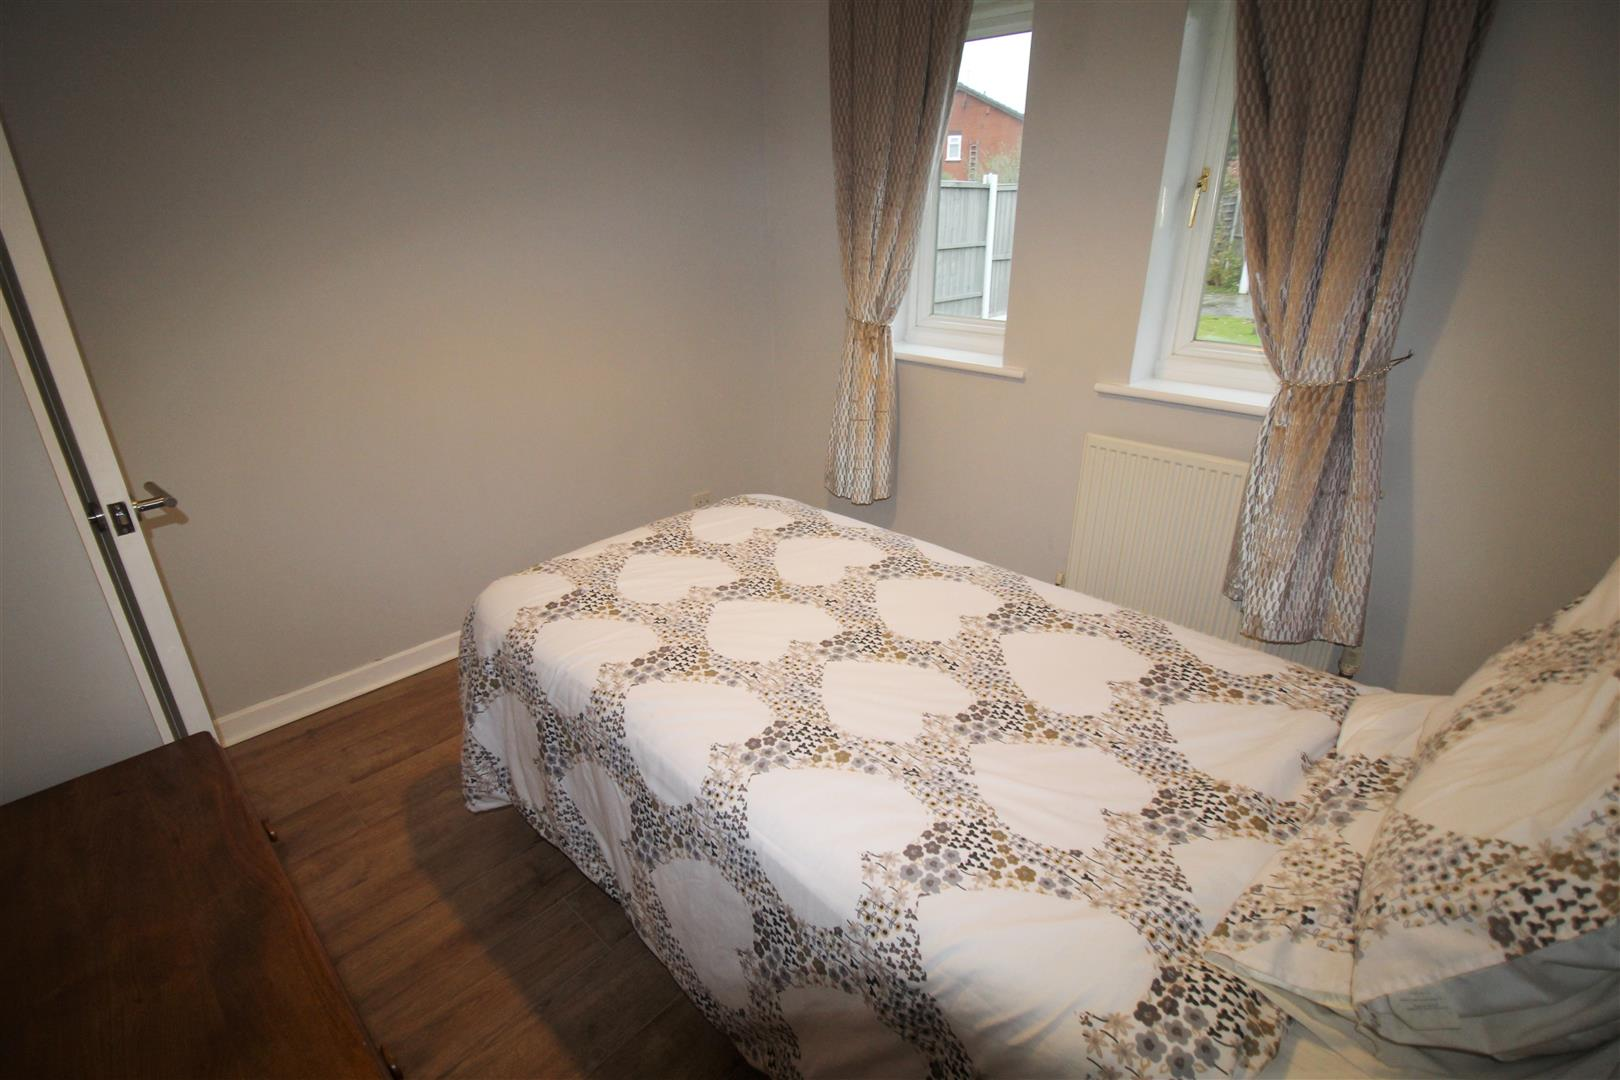 2 Bedrooms, Bungalow - Semi Detached, Darmonds Green Avenue, Liverpool